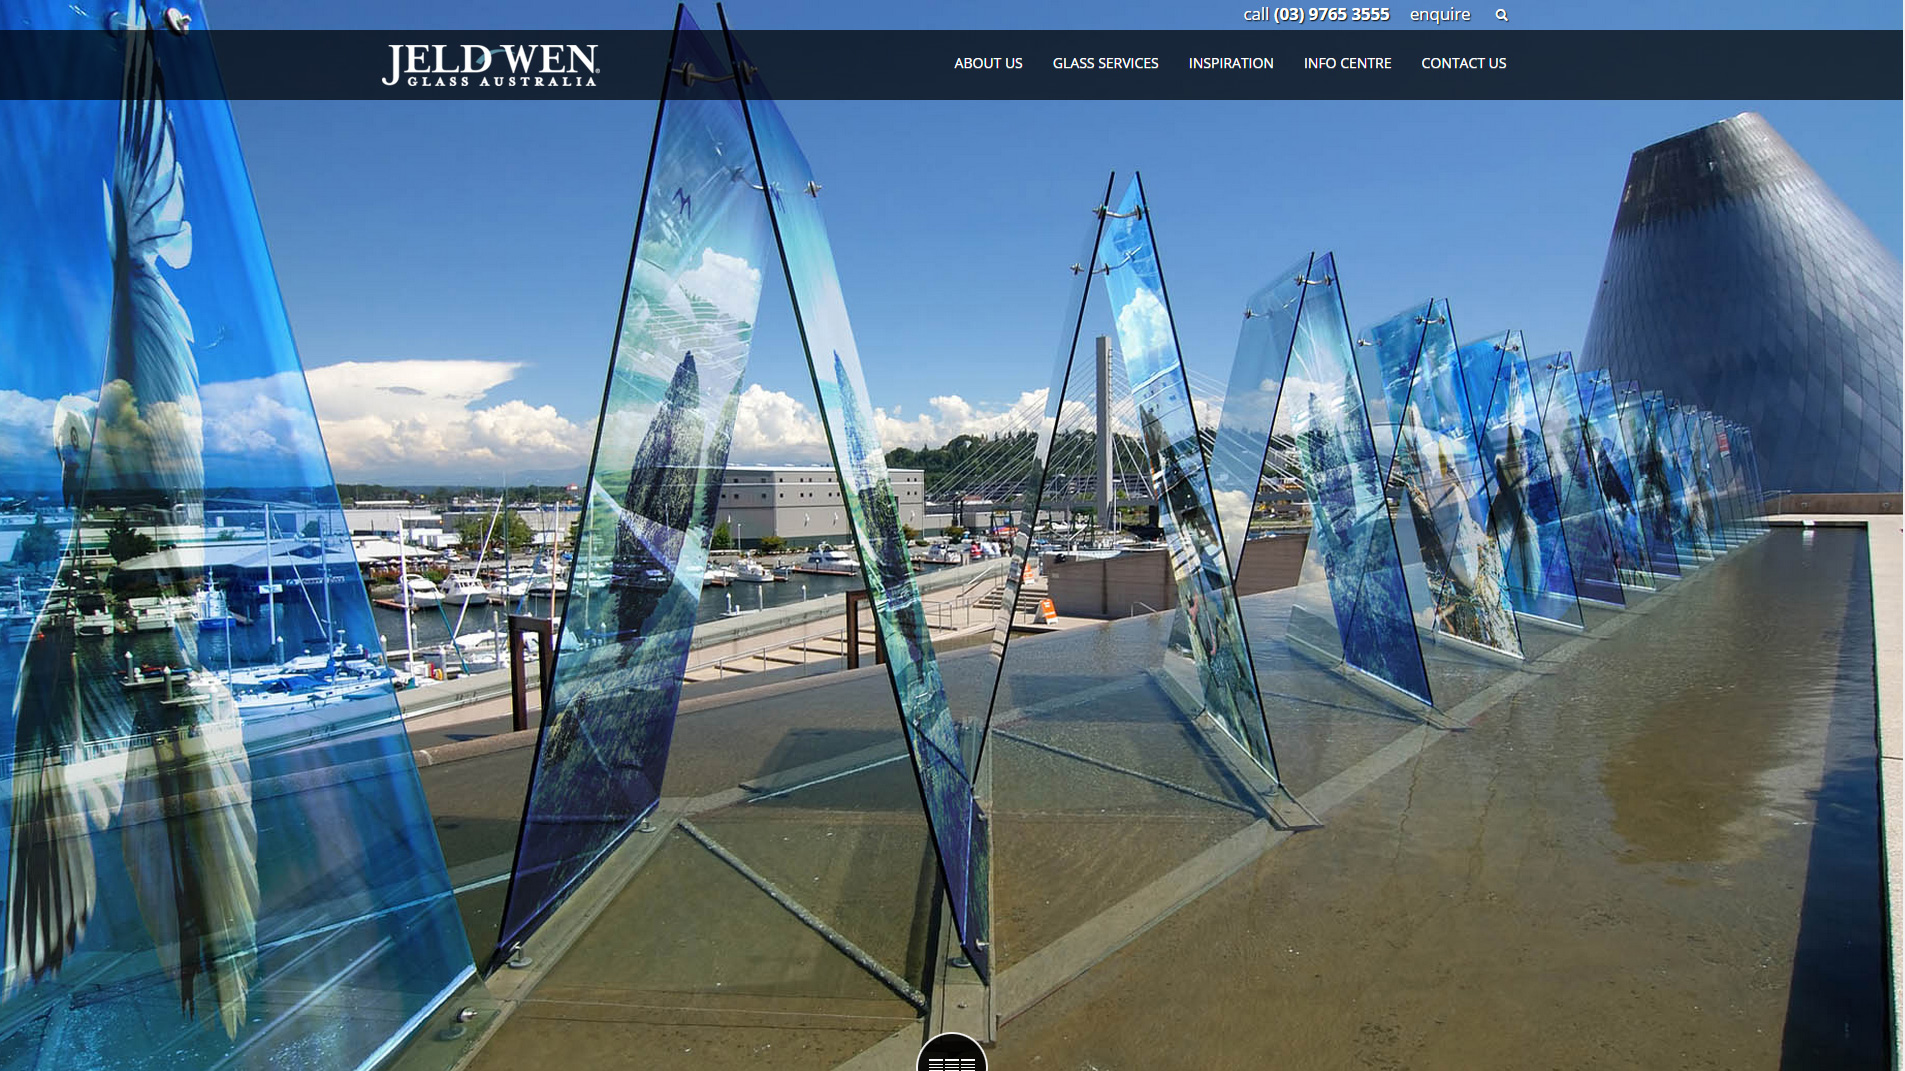 Check out New JELD-WEN Glass Website - Home to know how our web developers and web design Sydney team to help your online marketing, SEO, SEM, social marketing and web development.